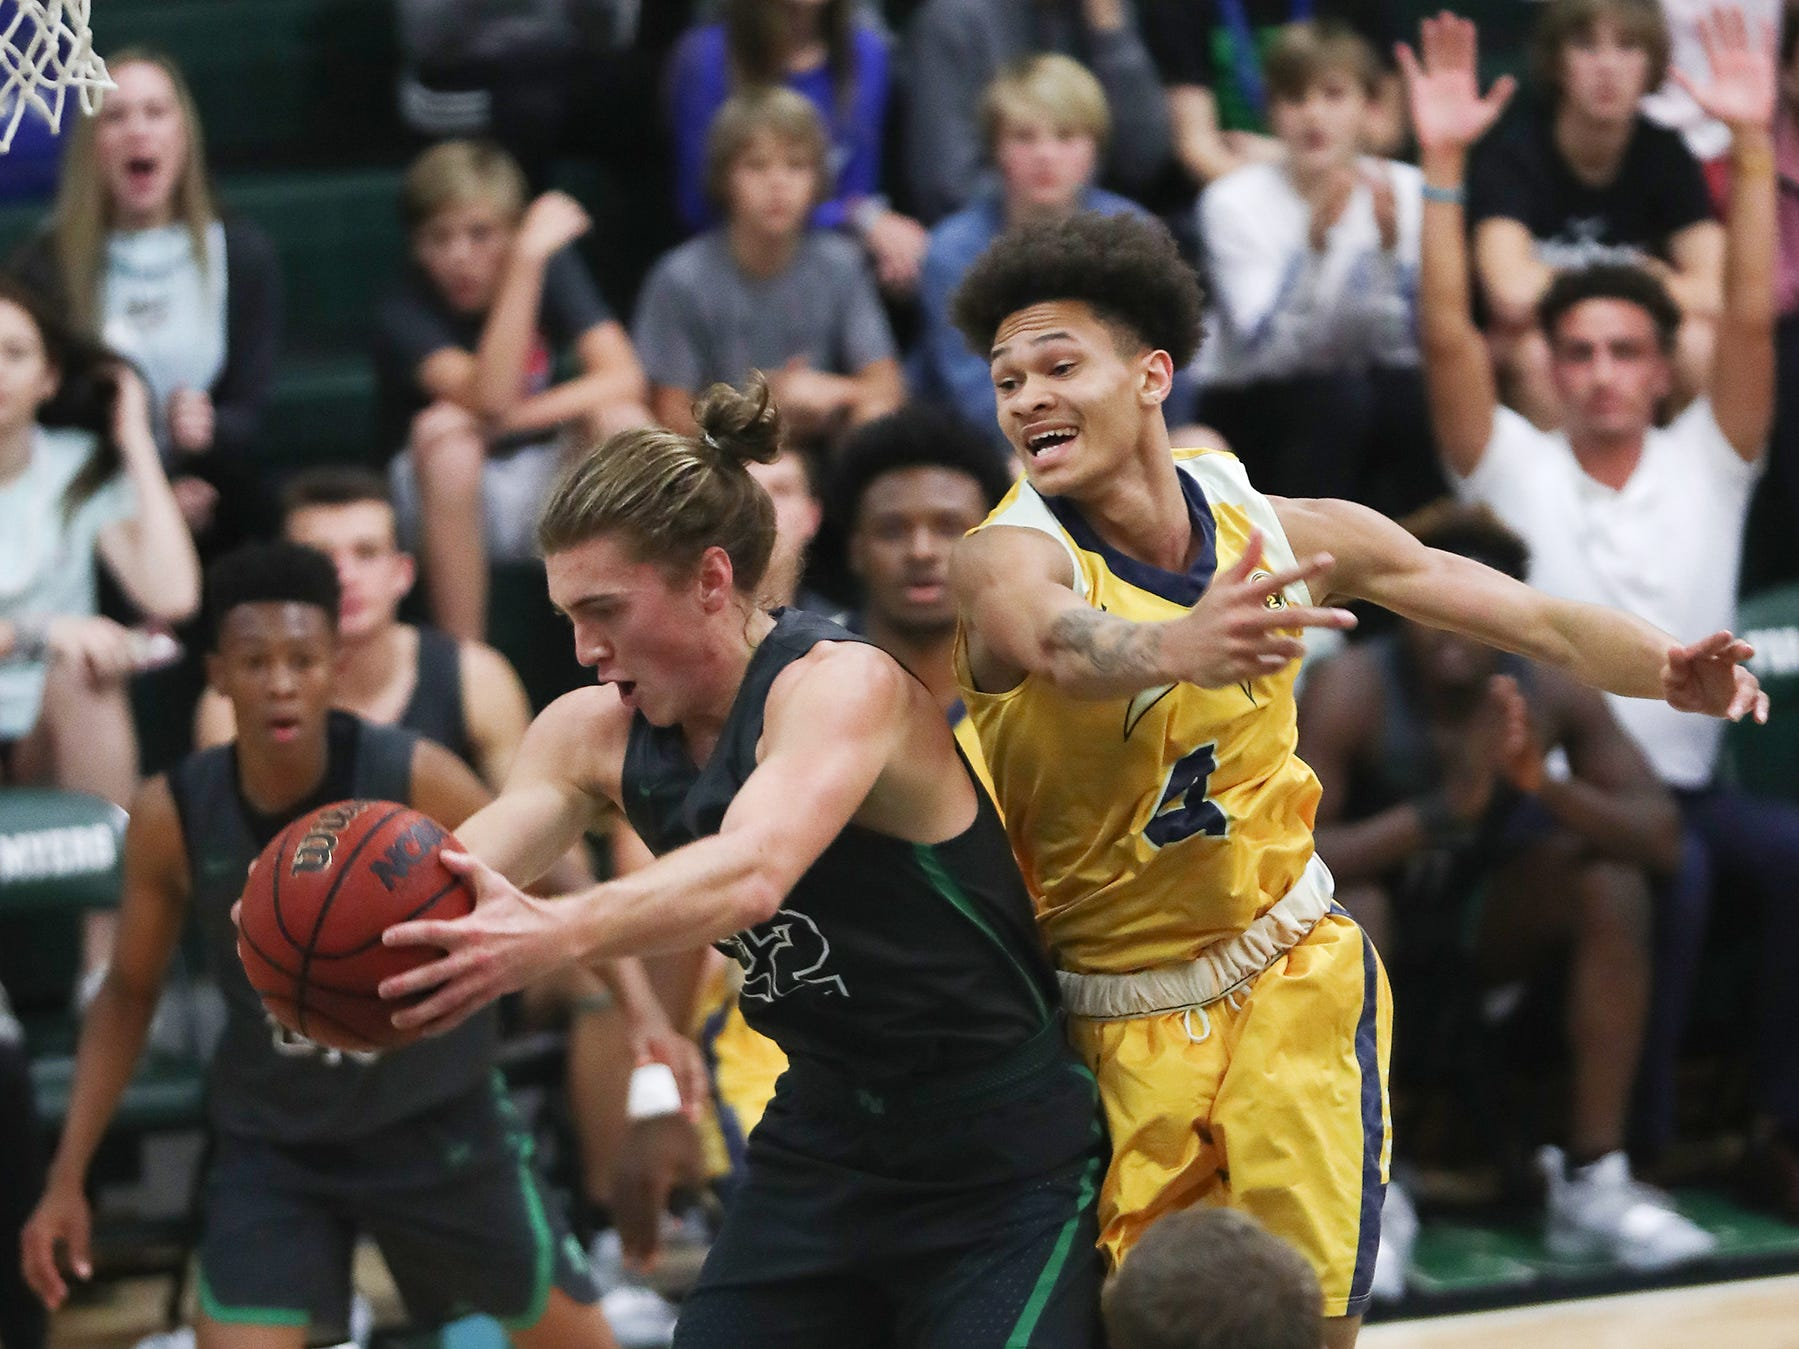 Fort Myers High School's Michael Roberts, left, rebounds against Lehigh on Friday in the Class 7A-11 championship game in Fort Myers. Fort Myers beat Lehigh 59-56.